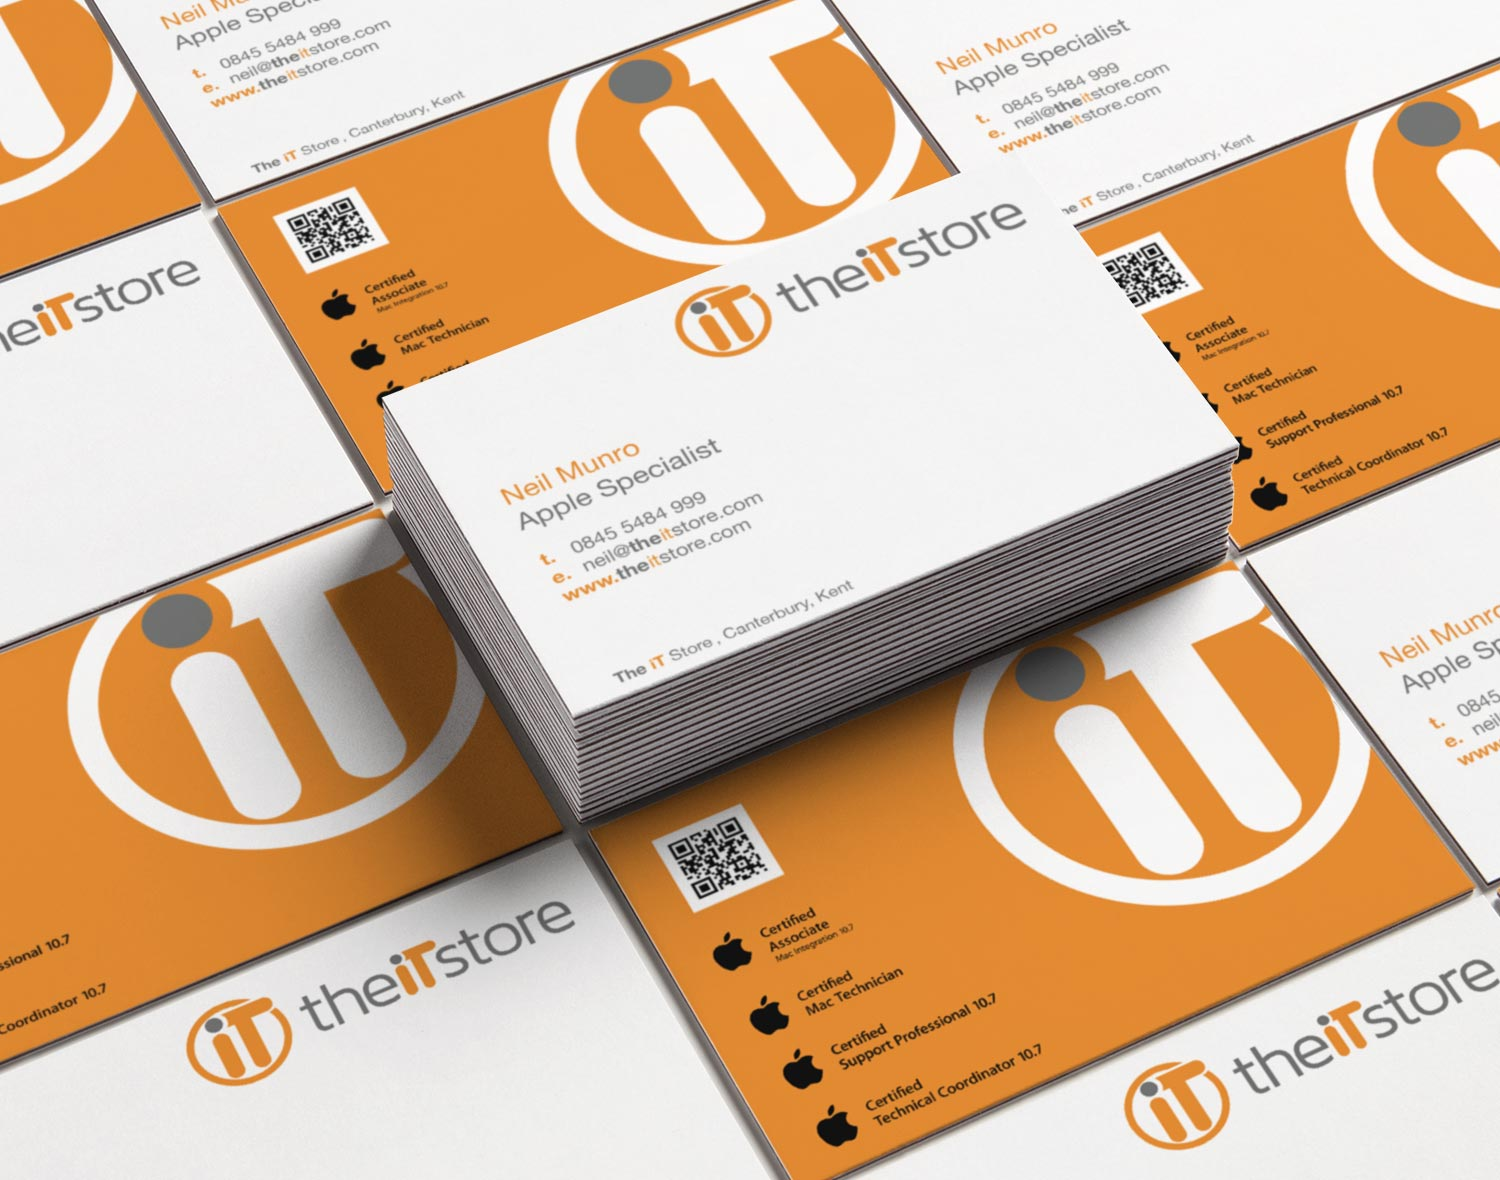 The iT Store business cards